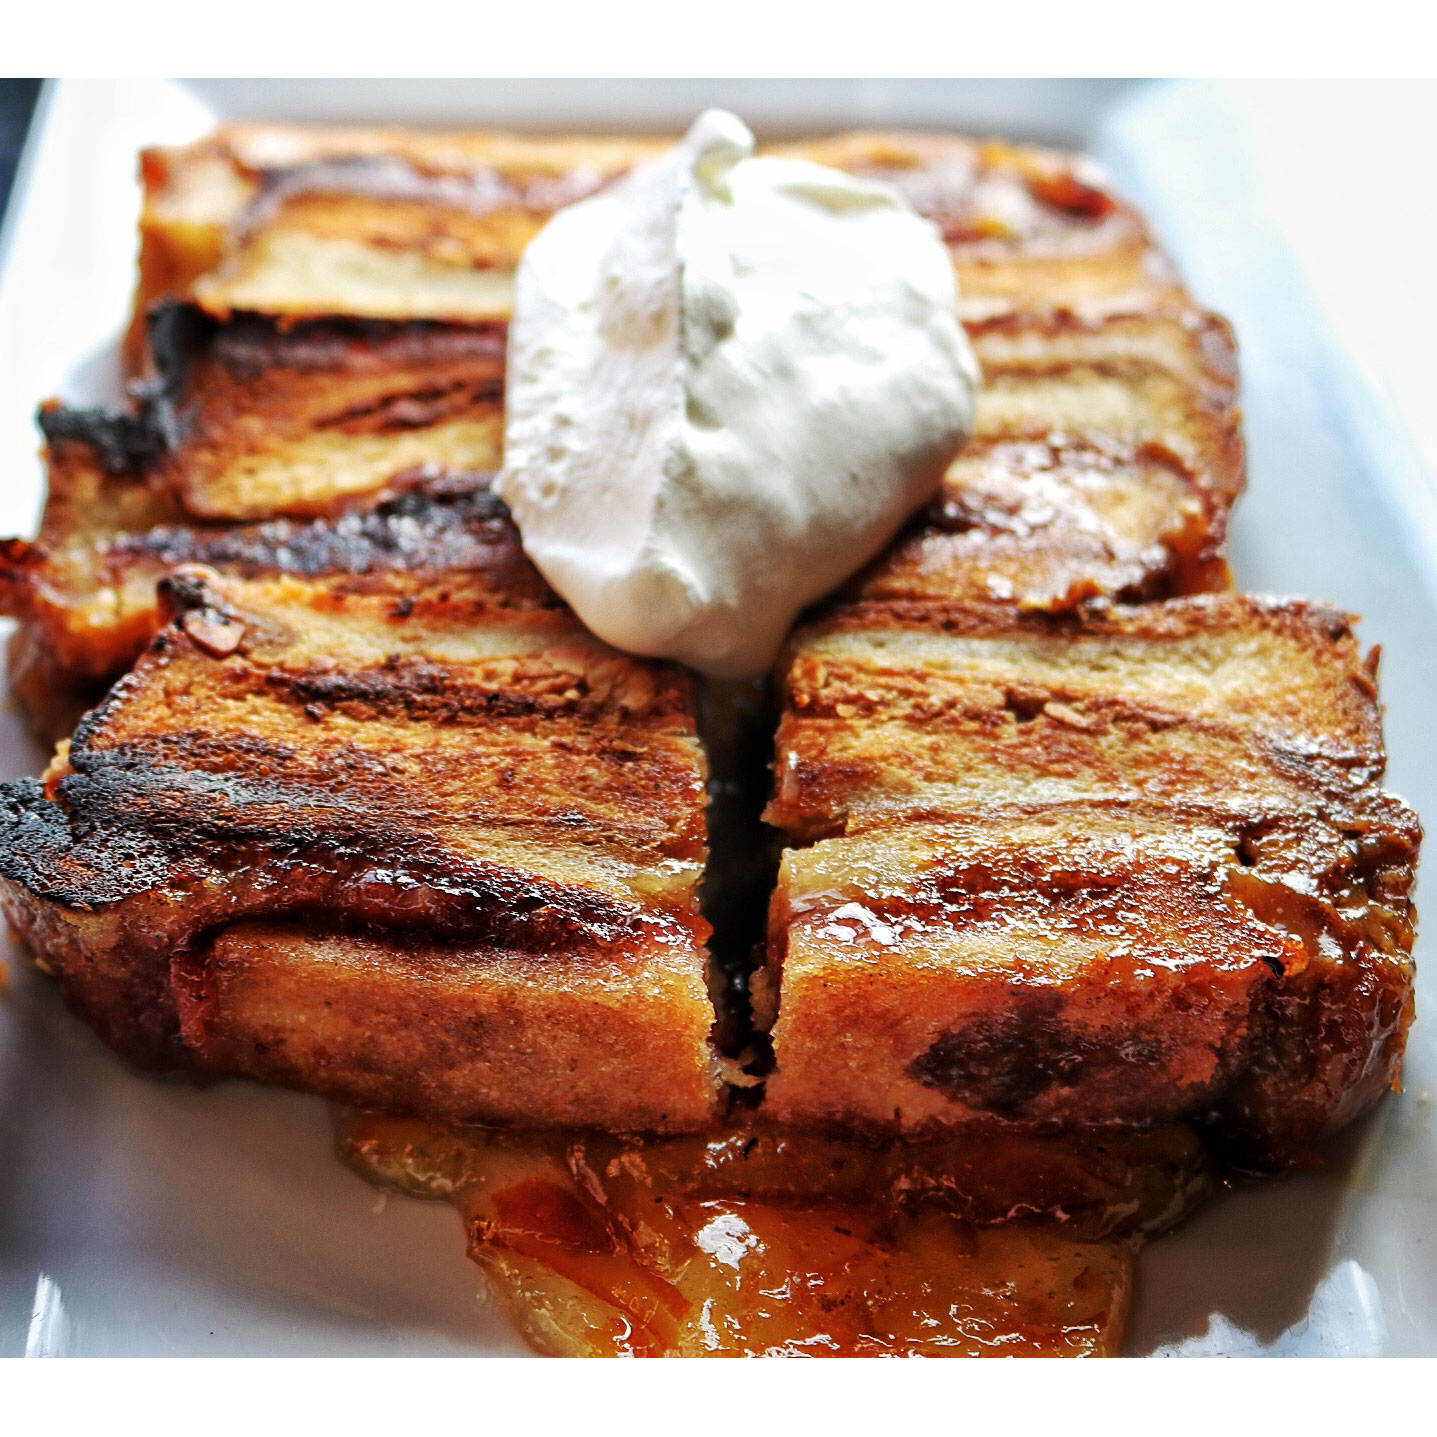 beef-and-barley-PBJ-french-toast-hangover-cures-fwx